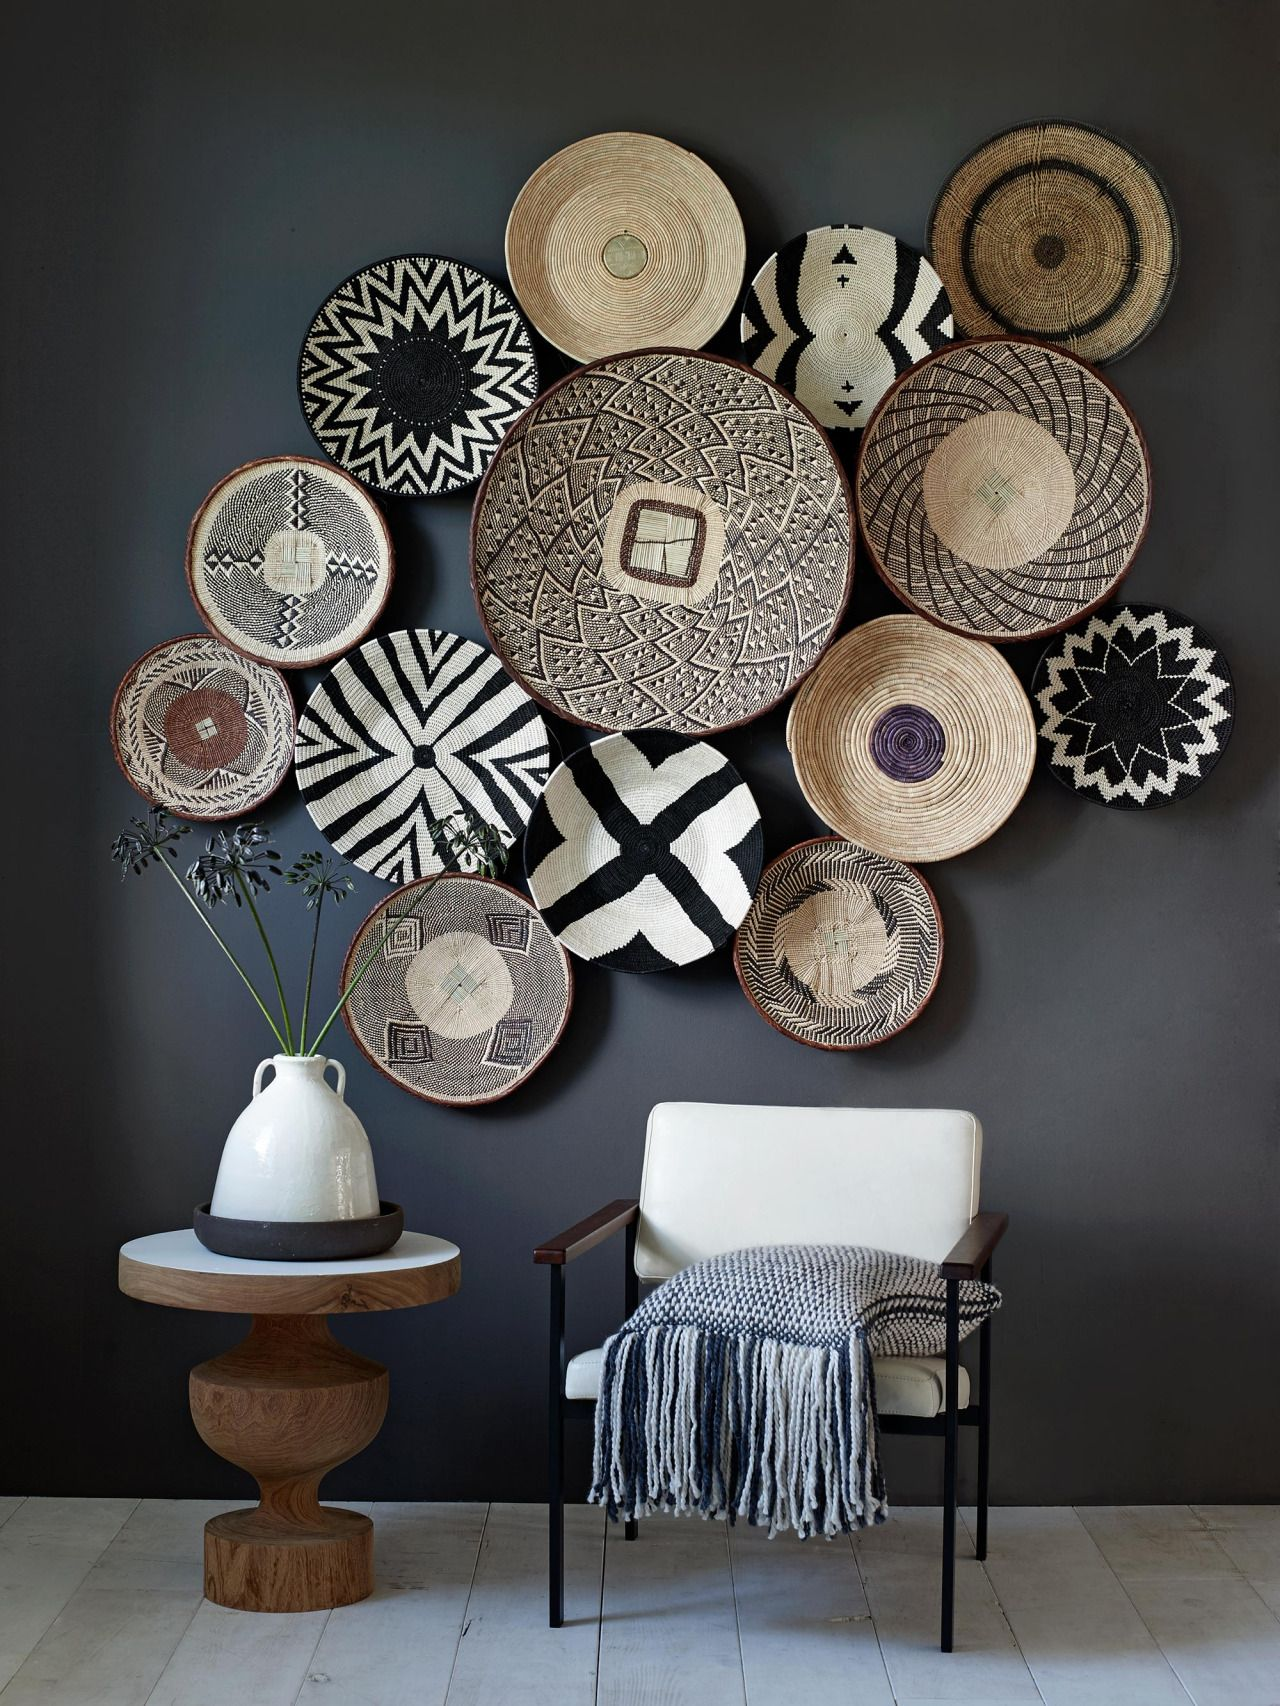 Wall Baskets Decor what to hang on the wall {besides art and photos | designers